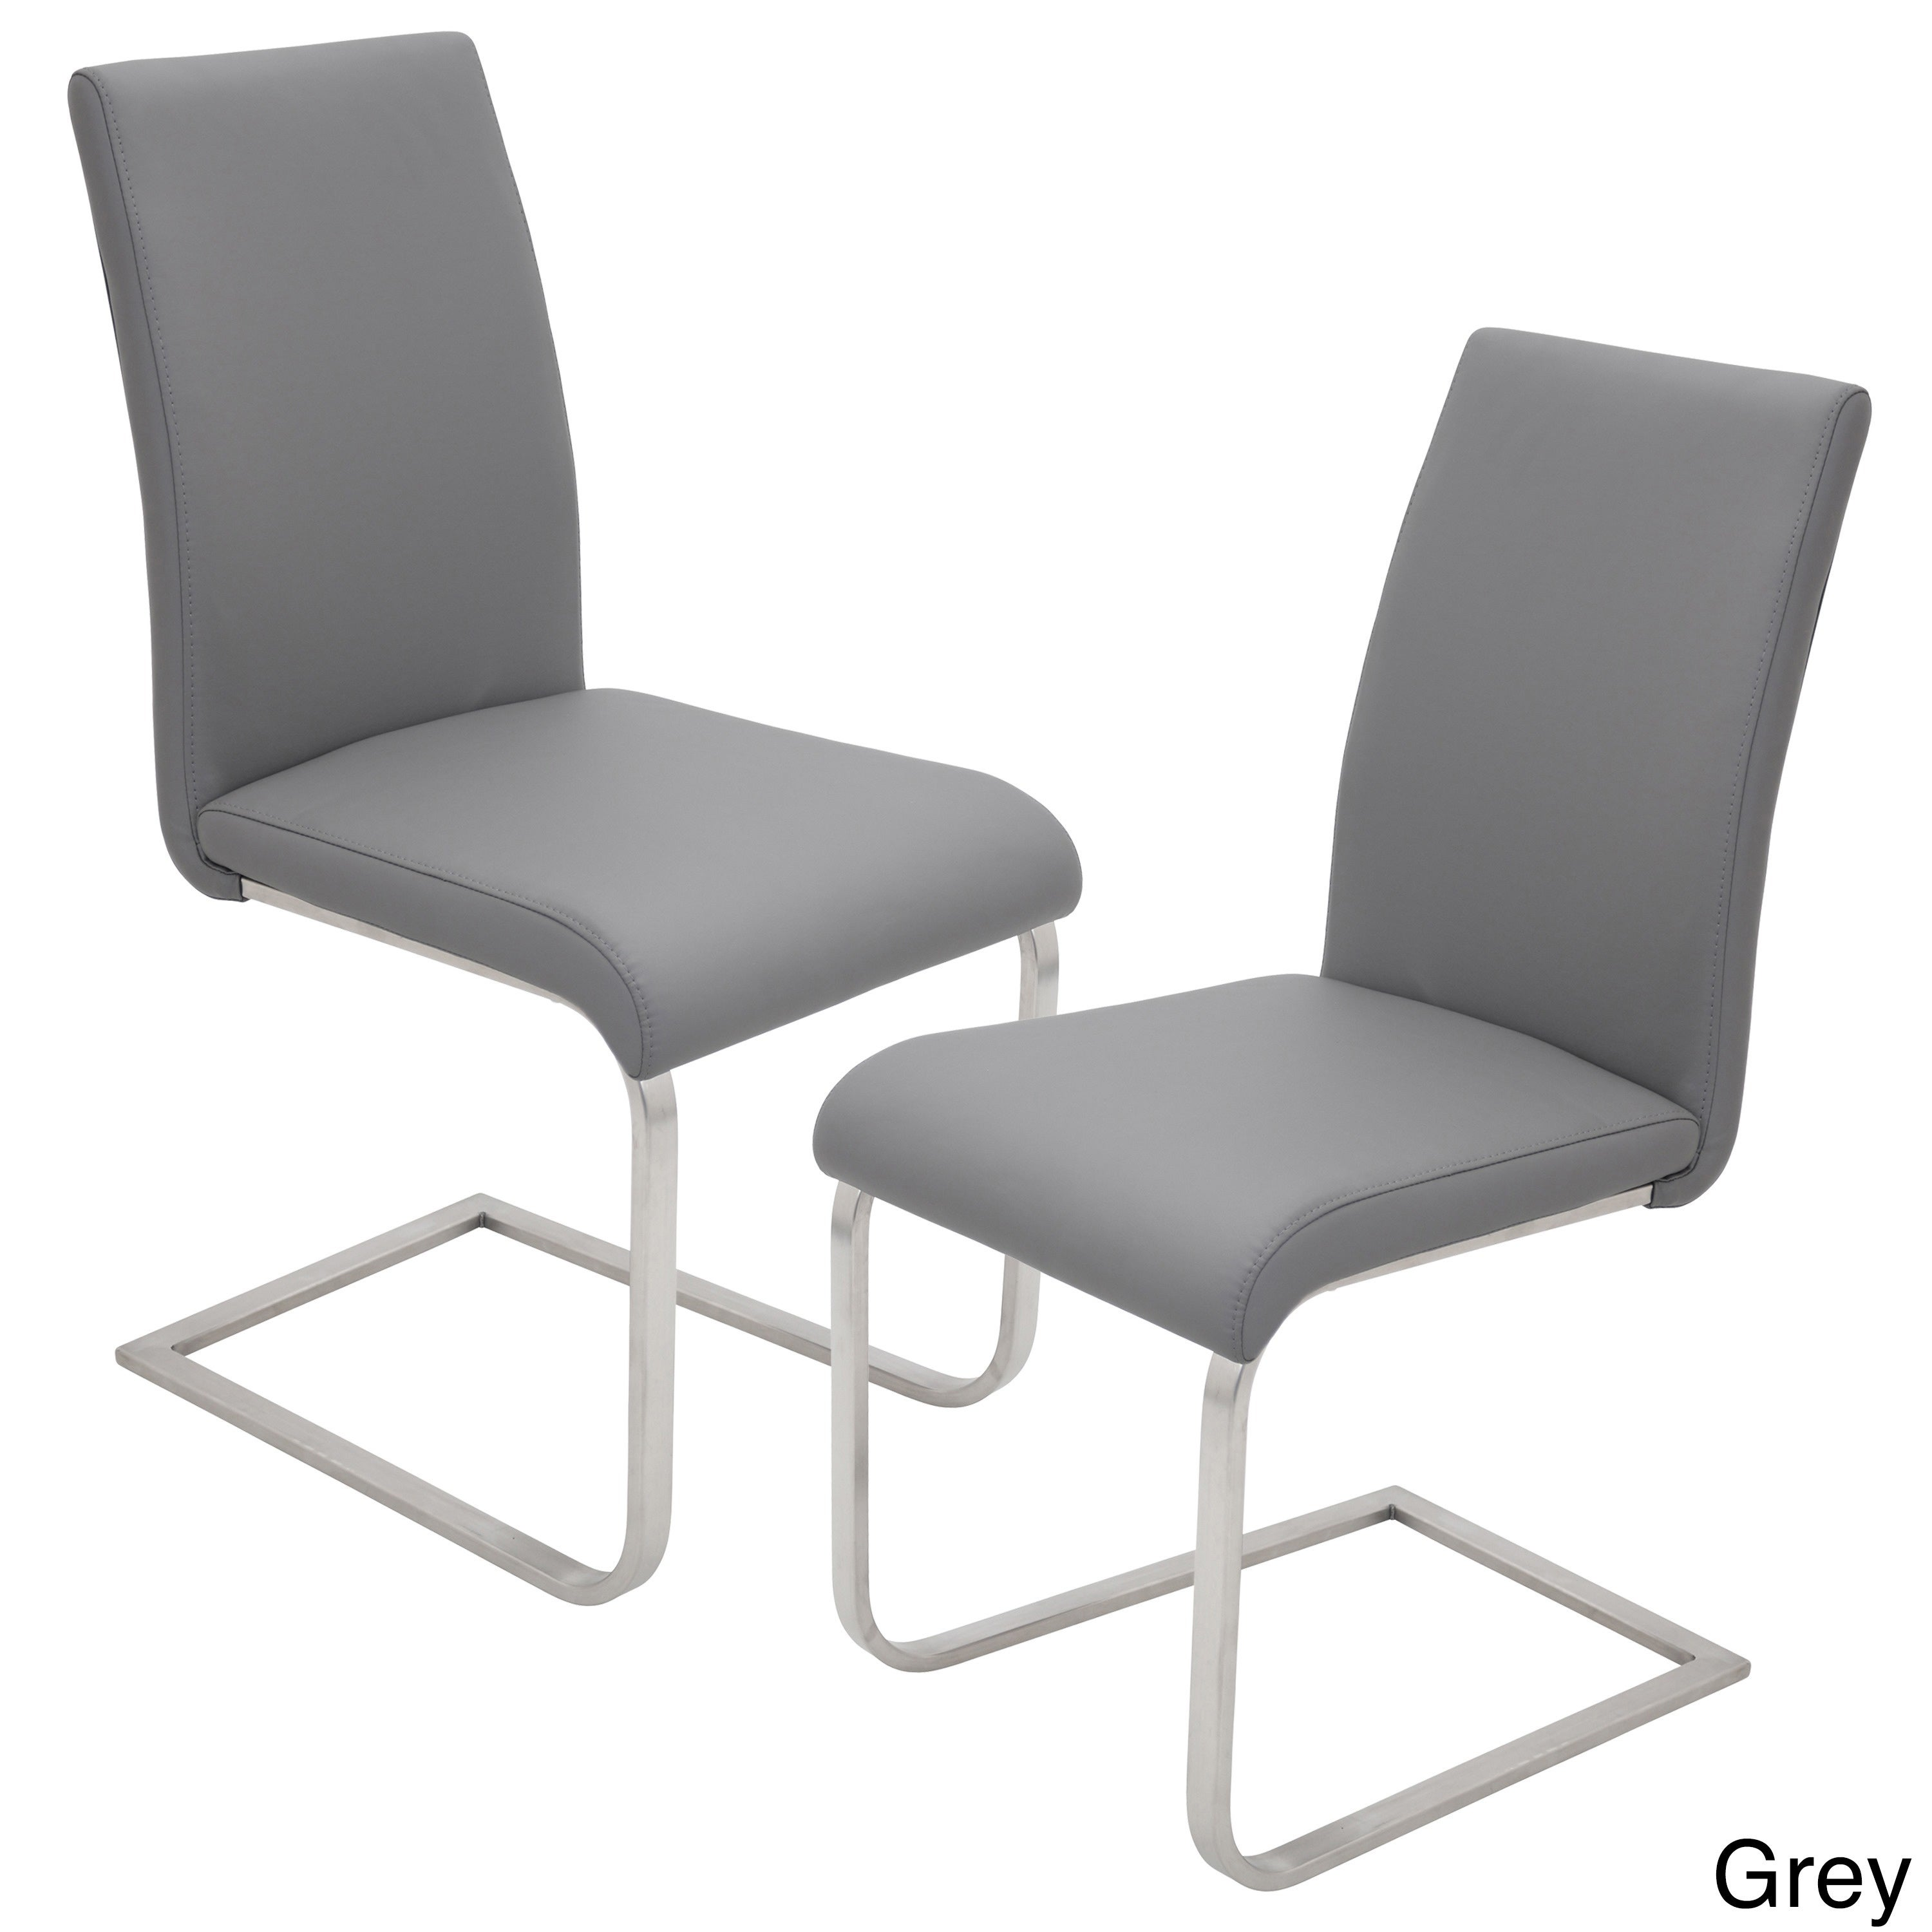 silver brushed metal chair woven. Oliver \u0026 James Stanya Contemporary Steel Dining Chairs (Set Of 2) - Free Shipping Today Overstock 17645826 Silver Brushed Metal Chair Woven M